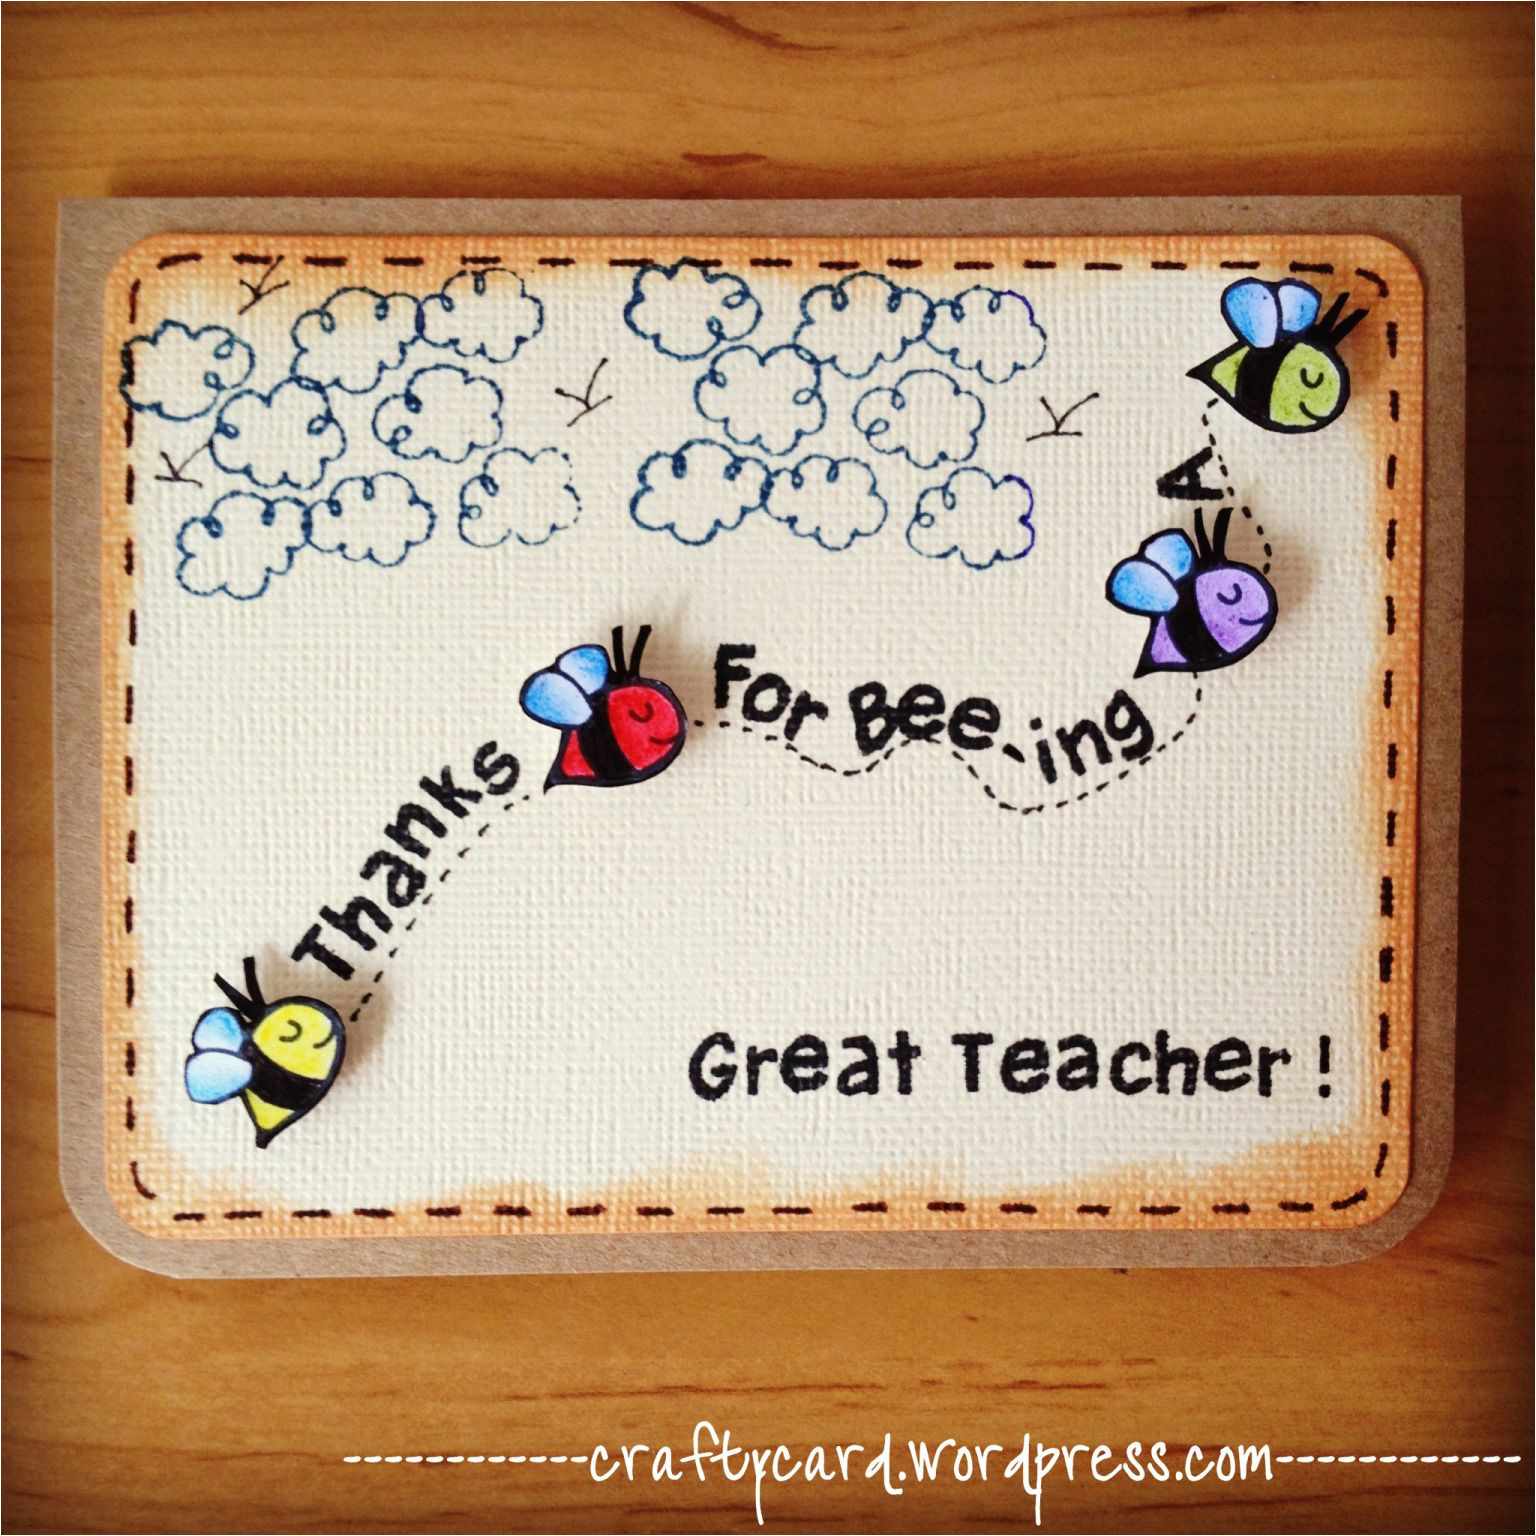 Images Of Teachers Day Card M203 Thanks for Bee Ing A Great Teacher with Images